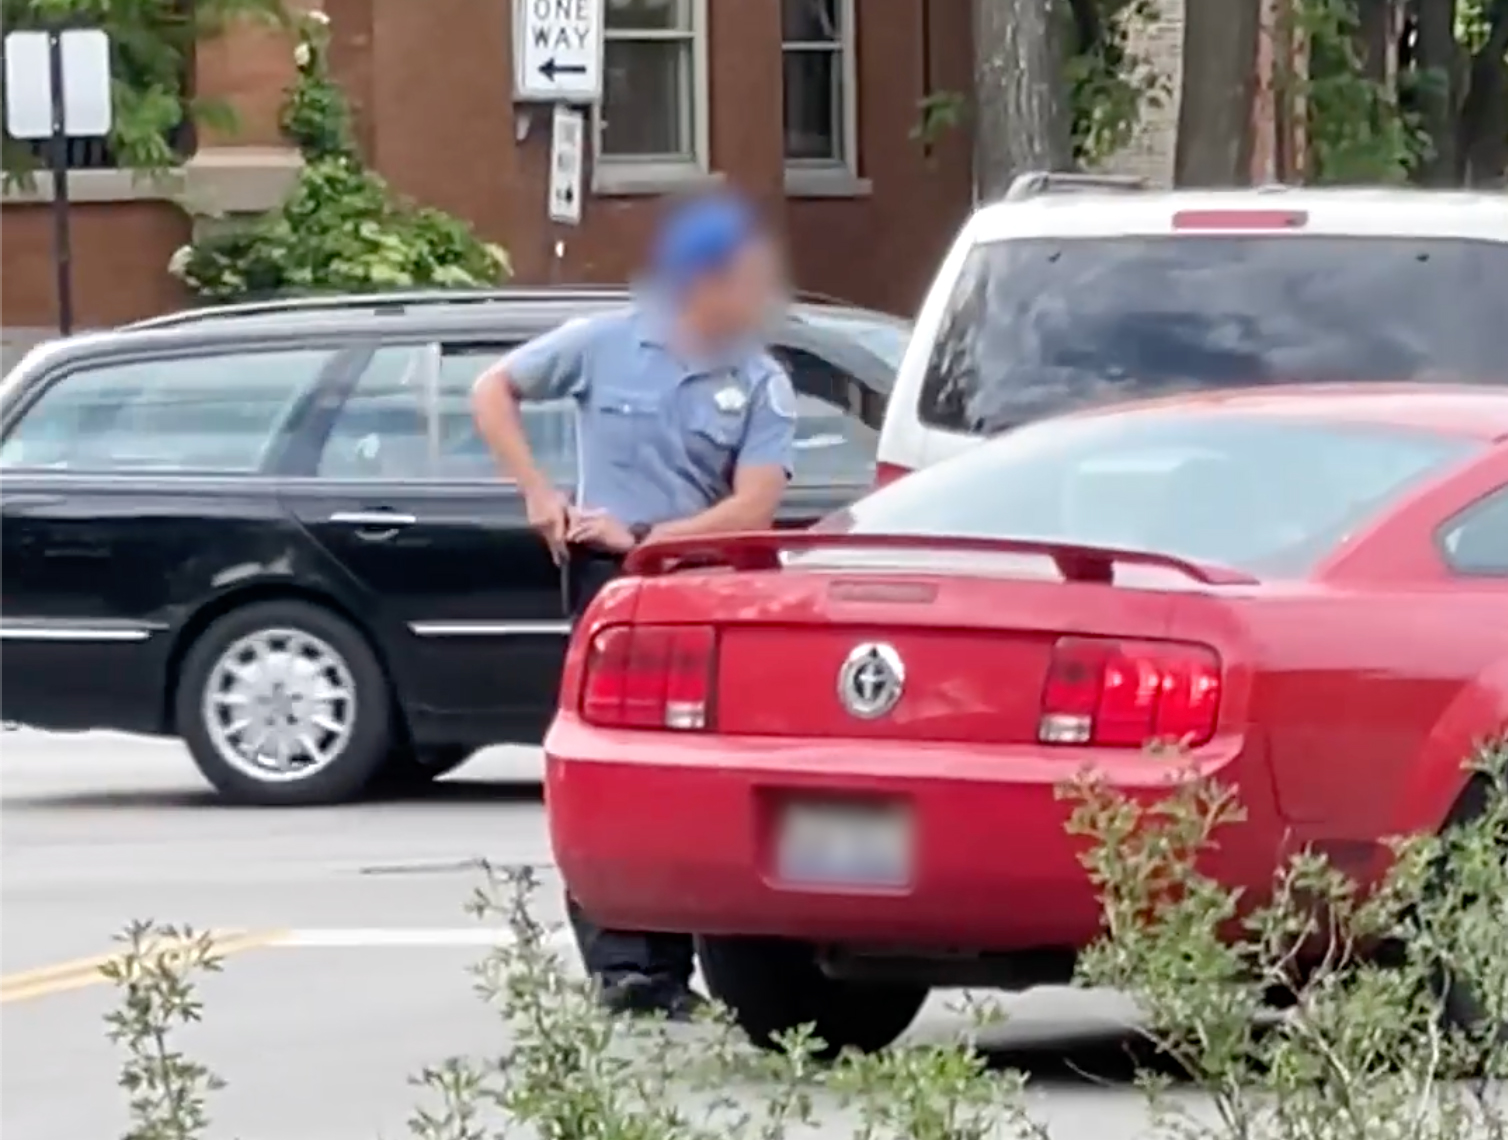 A Chicago police officer holsters his weapon after being involved in an apparent road rage incident in Logan Square.